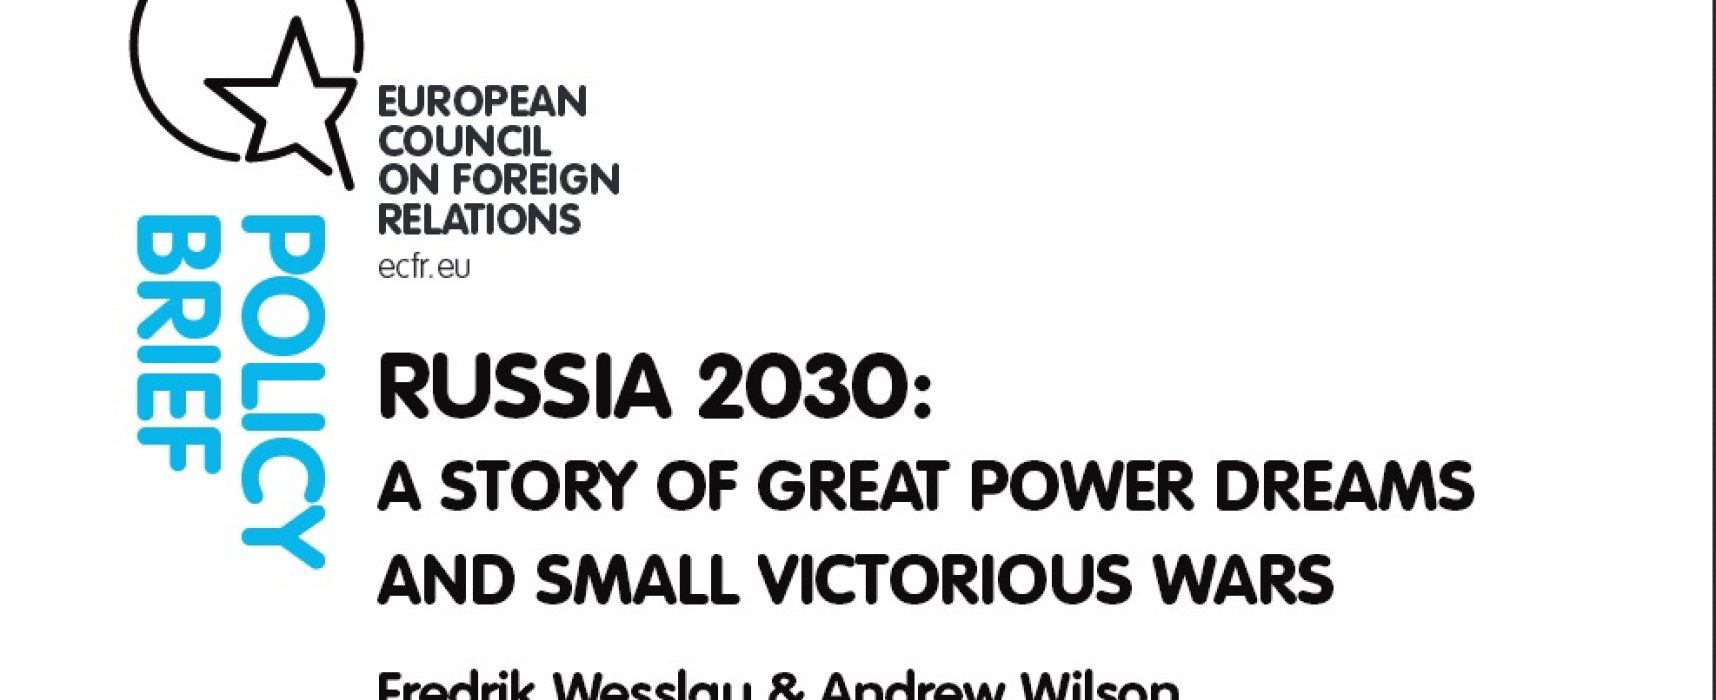 Russia 2030: A story of great power dreams and small victorious wars